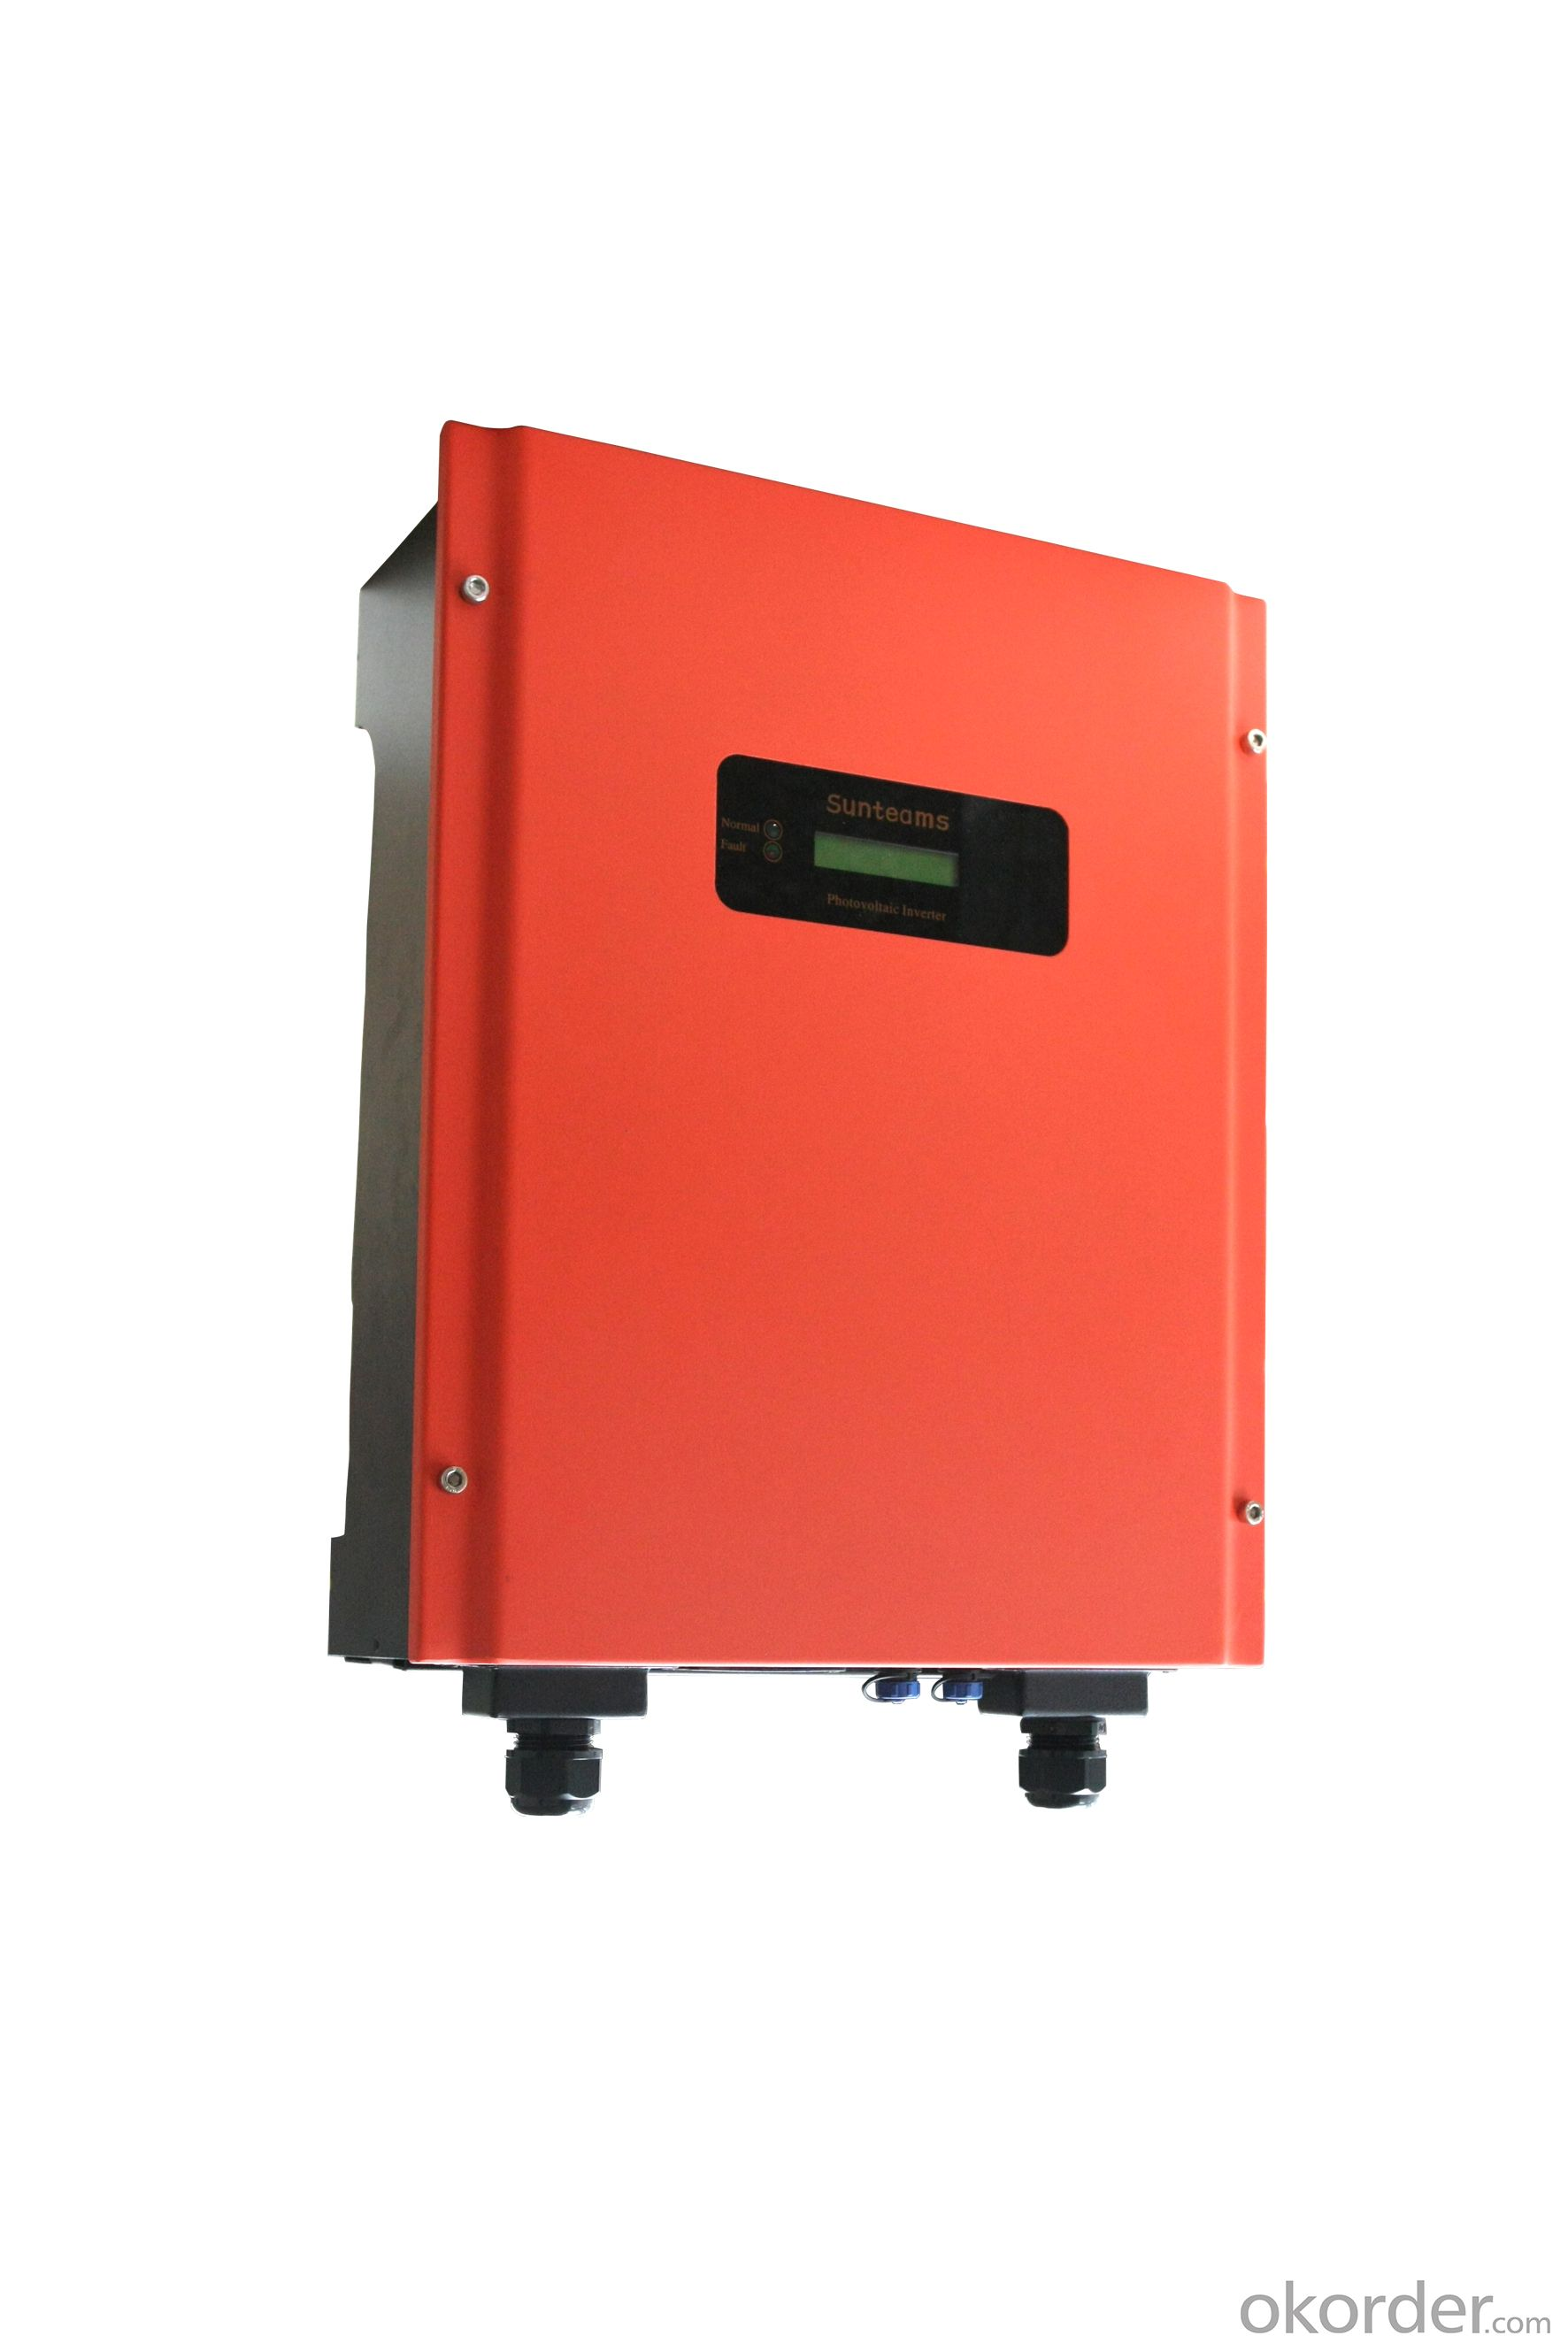 PV Inverter Sunteams 4000-5000(US) ETL